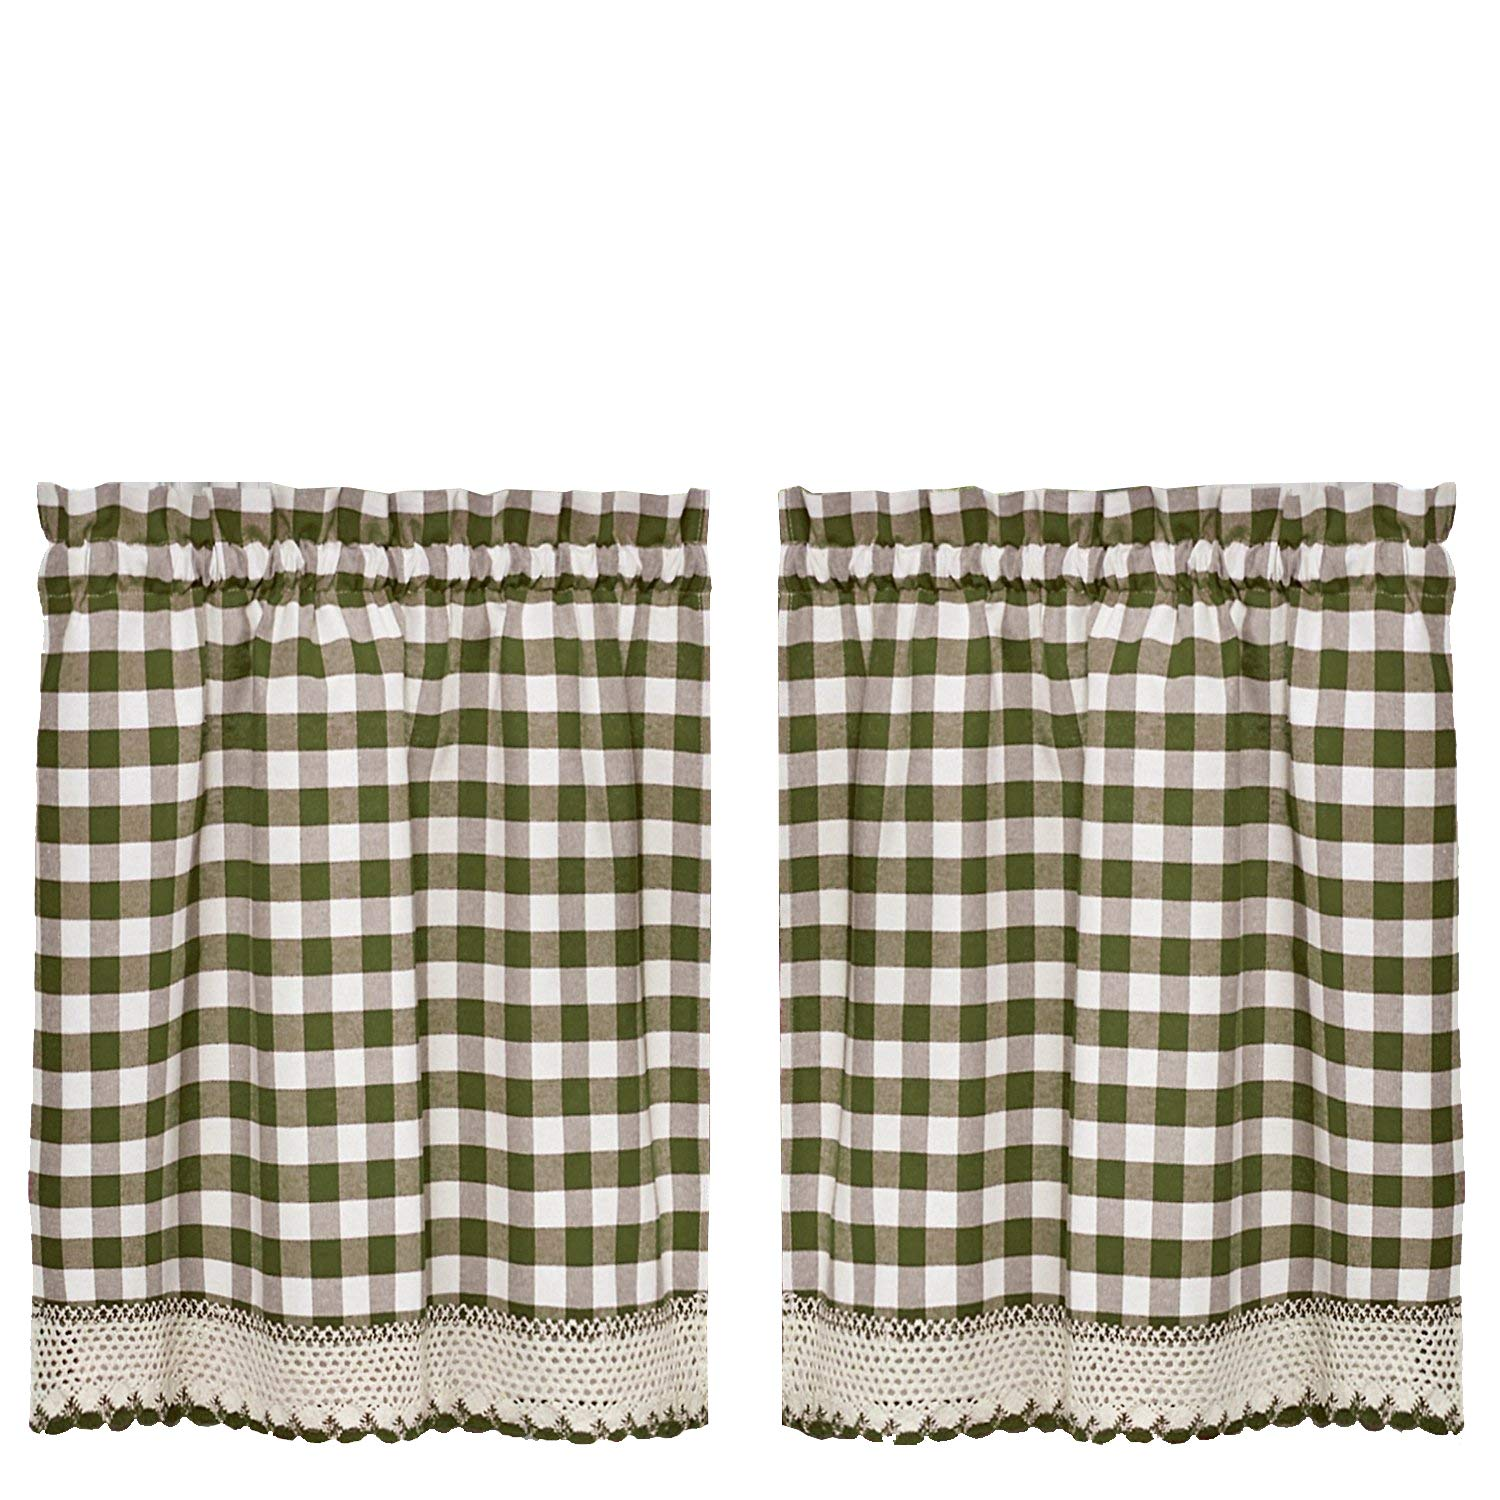 GoodGram Buffalo Check Plaid Gingham Custom Fit Window Curtain Treatments Assorted Colors, Styles & Sizes (24 in. Tier Pair, Sage)